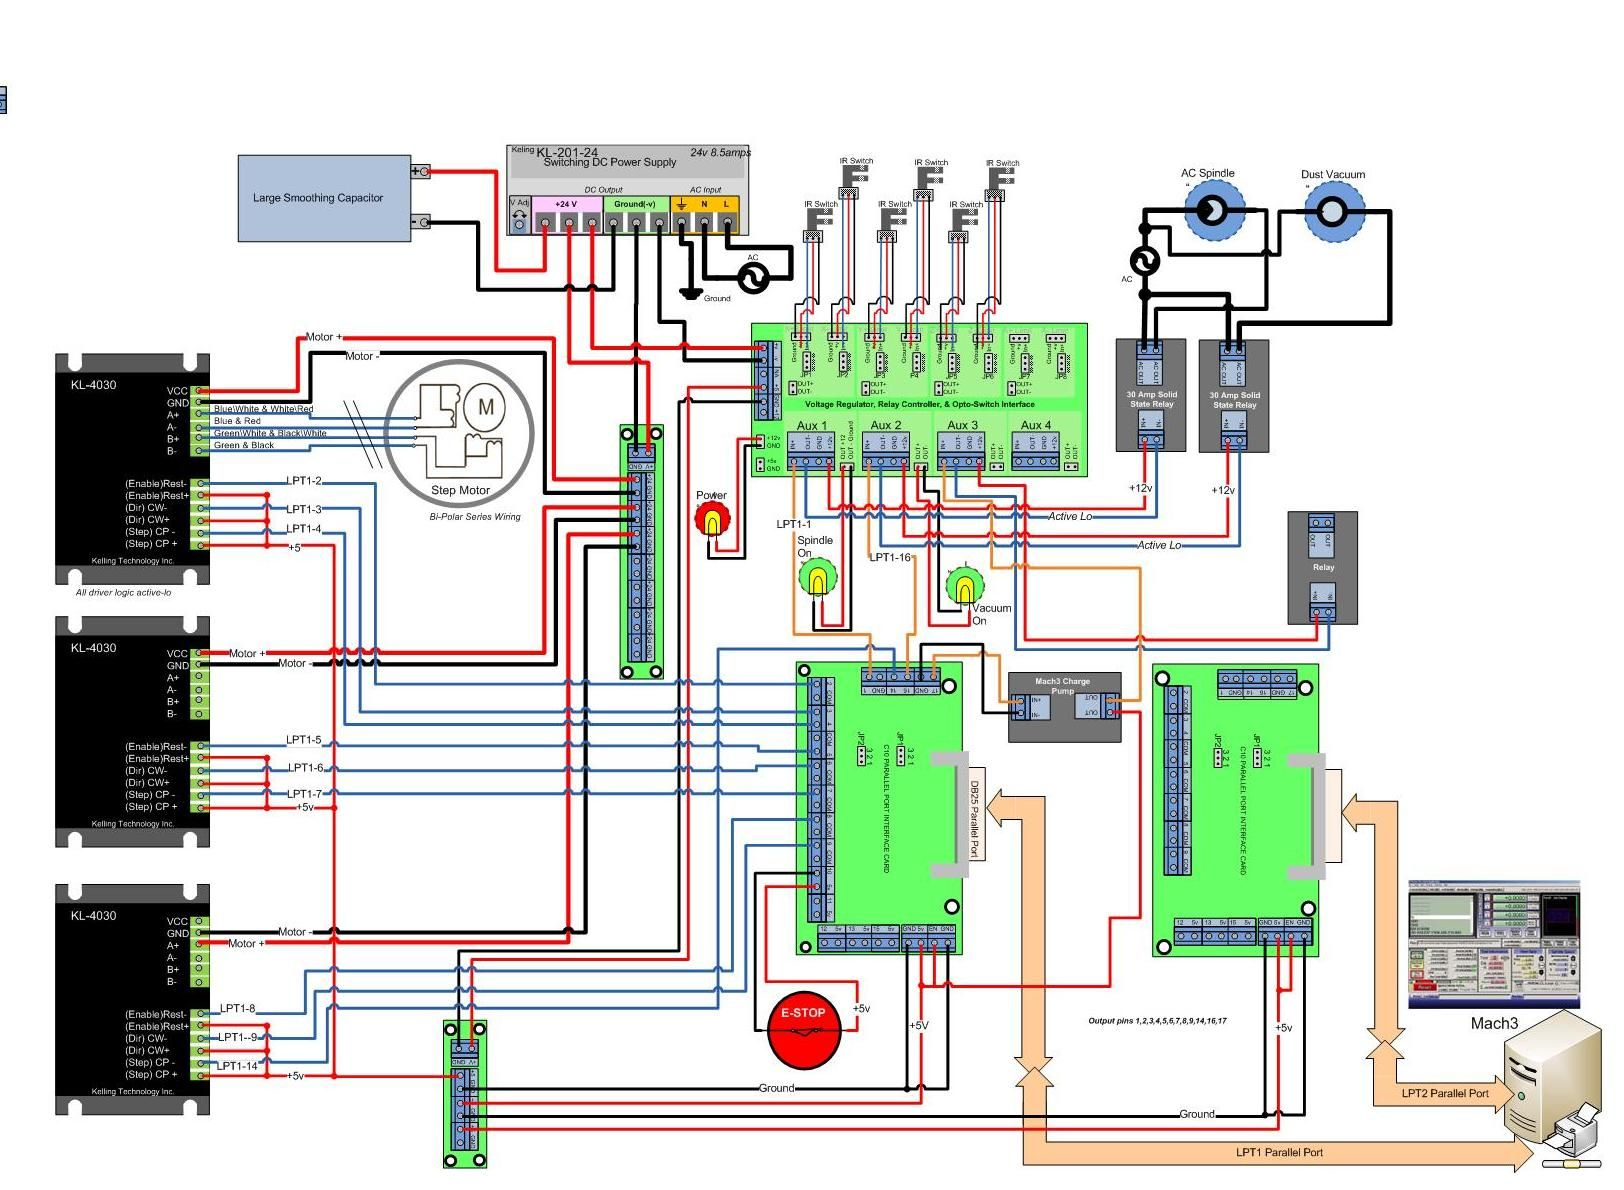 de60b189cc98ab72eeb9d2e3f3d349dc cnc wiring diagram homemade cnc wiring diagram \u2022 wiring diagrams Open Close Limit Switch Wiring Diagram at bayanpartner.co